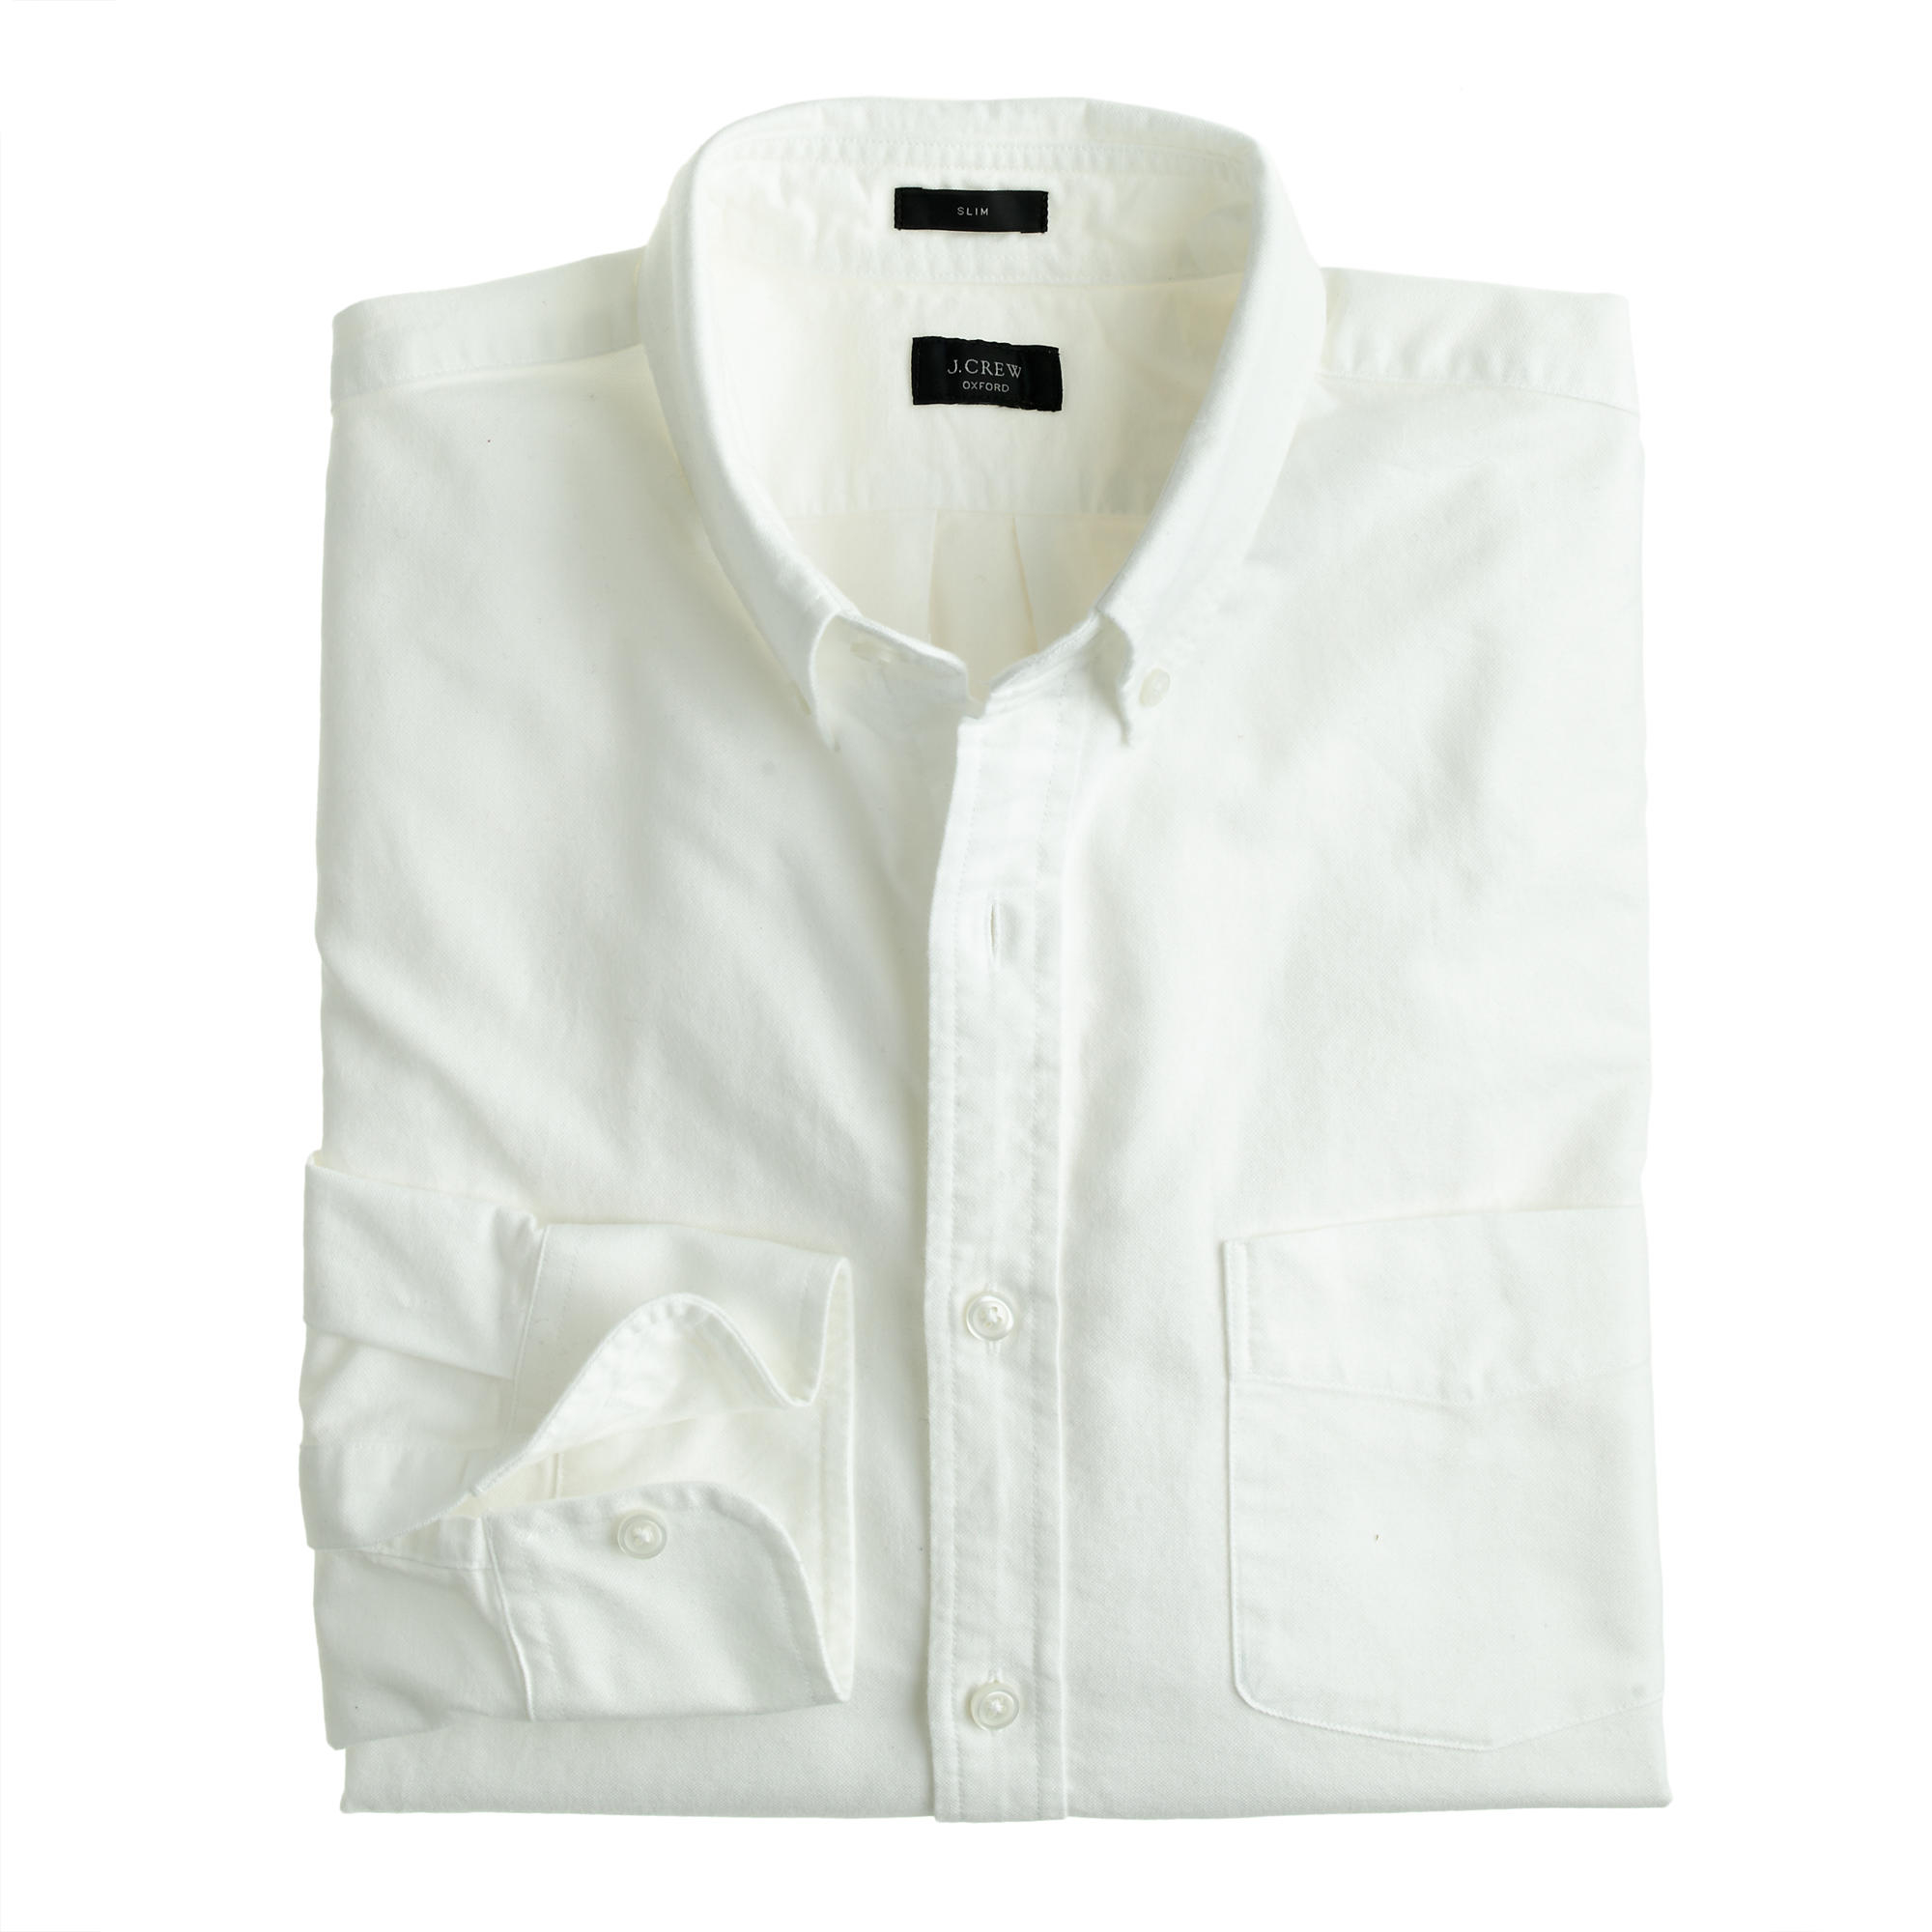 Vintage Oxford Shirt In White In White For Men Lyst